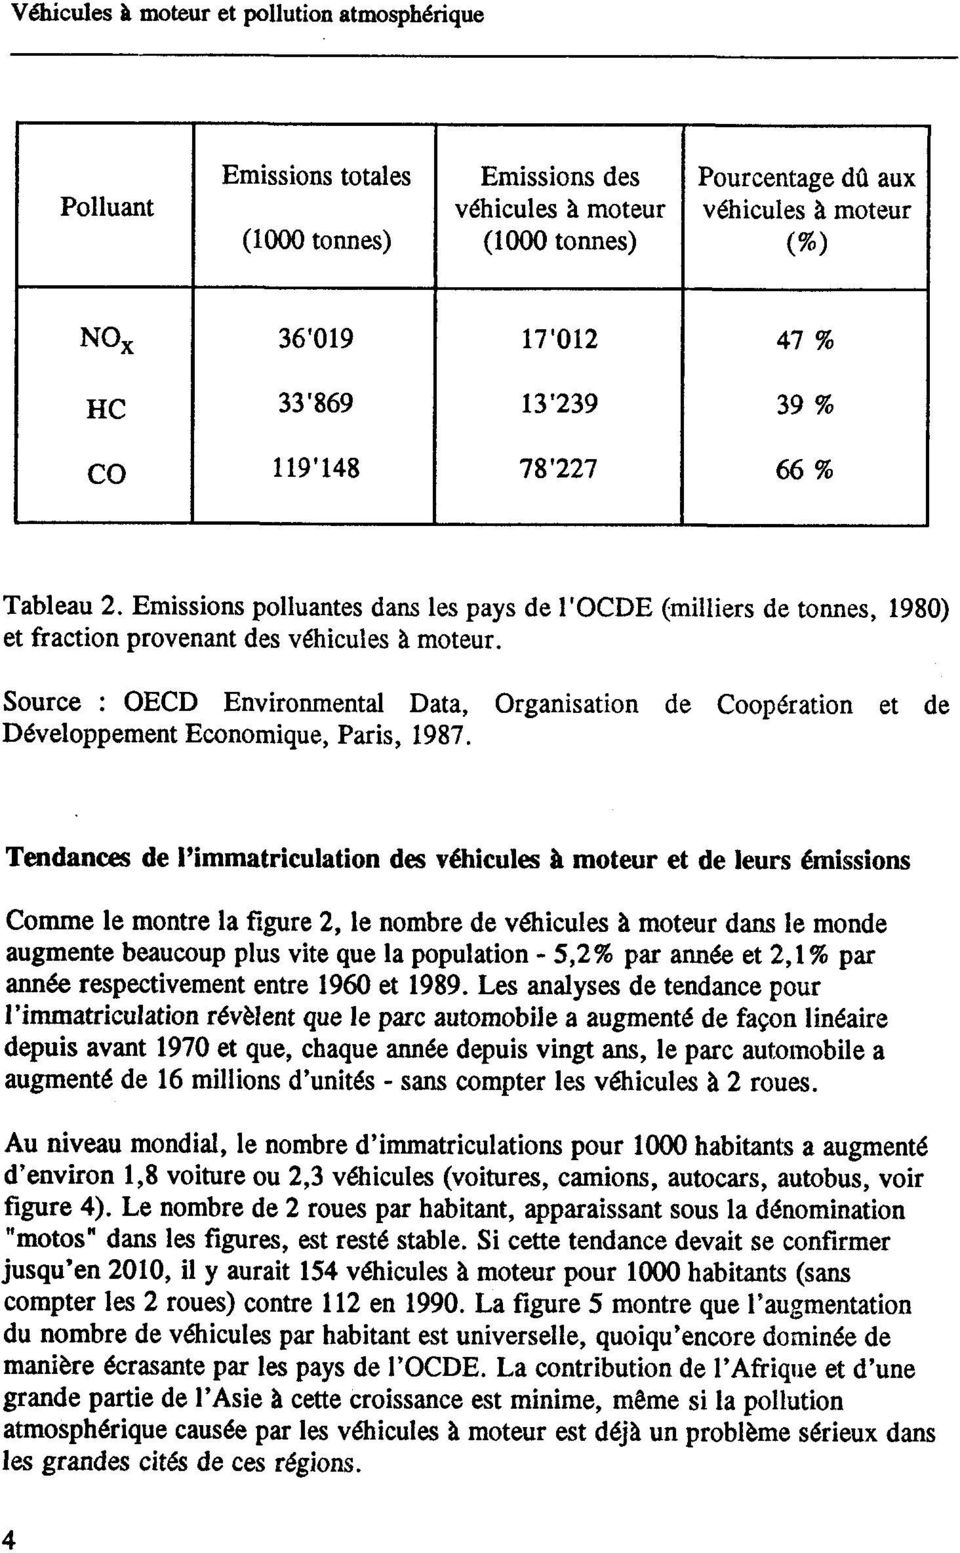 Surce : OECD Envirnmental Data, Organisatin de Cpdratin et de D6velppement Ecnmique, Paris, 1987.